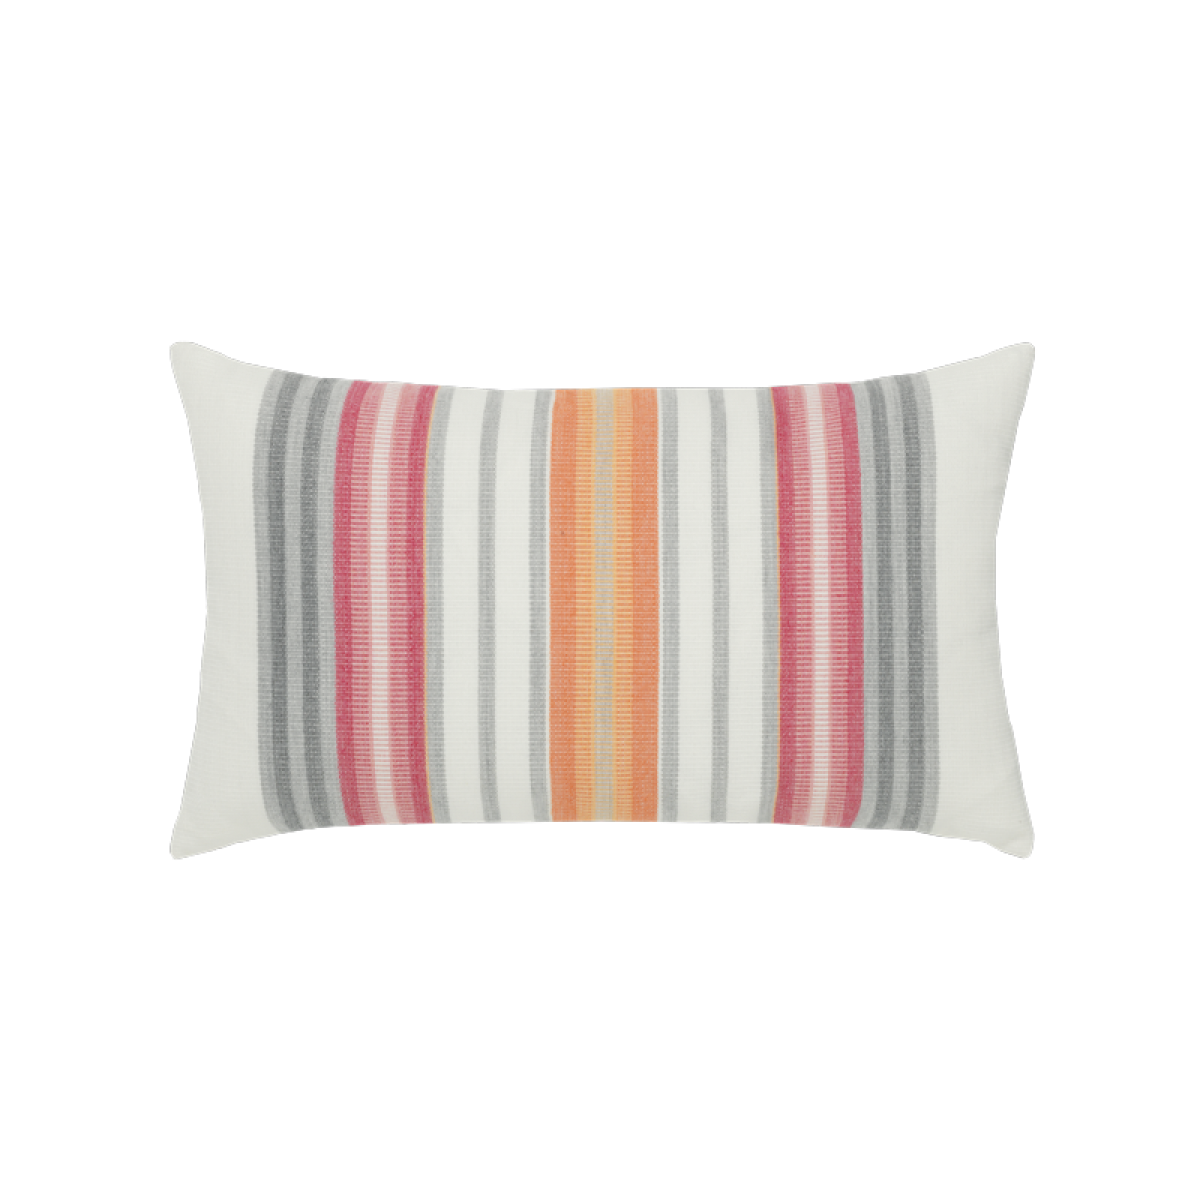 Sherbet Stripe Lumbar - This item will ship by 12/15